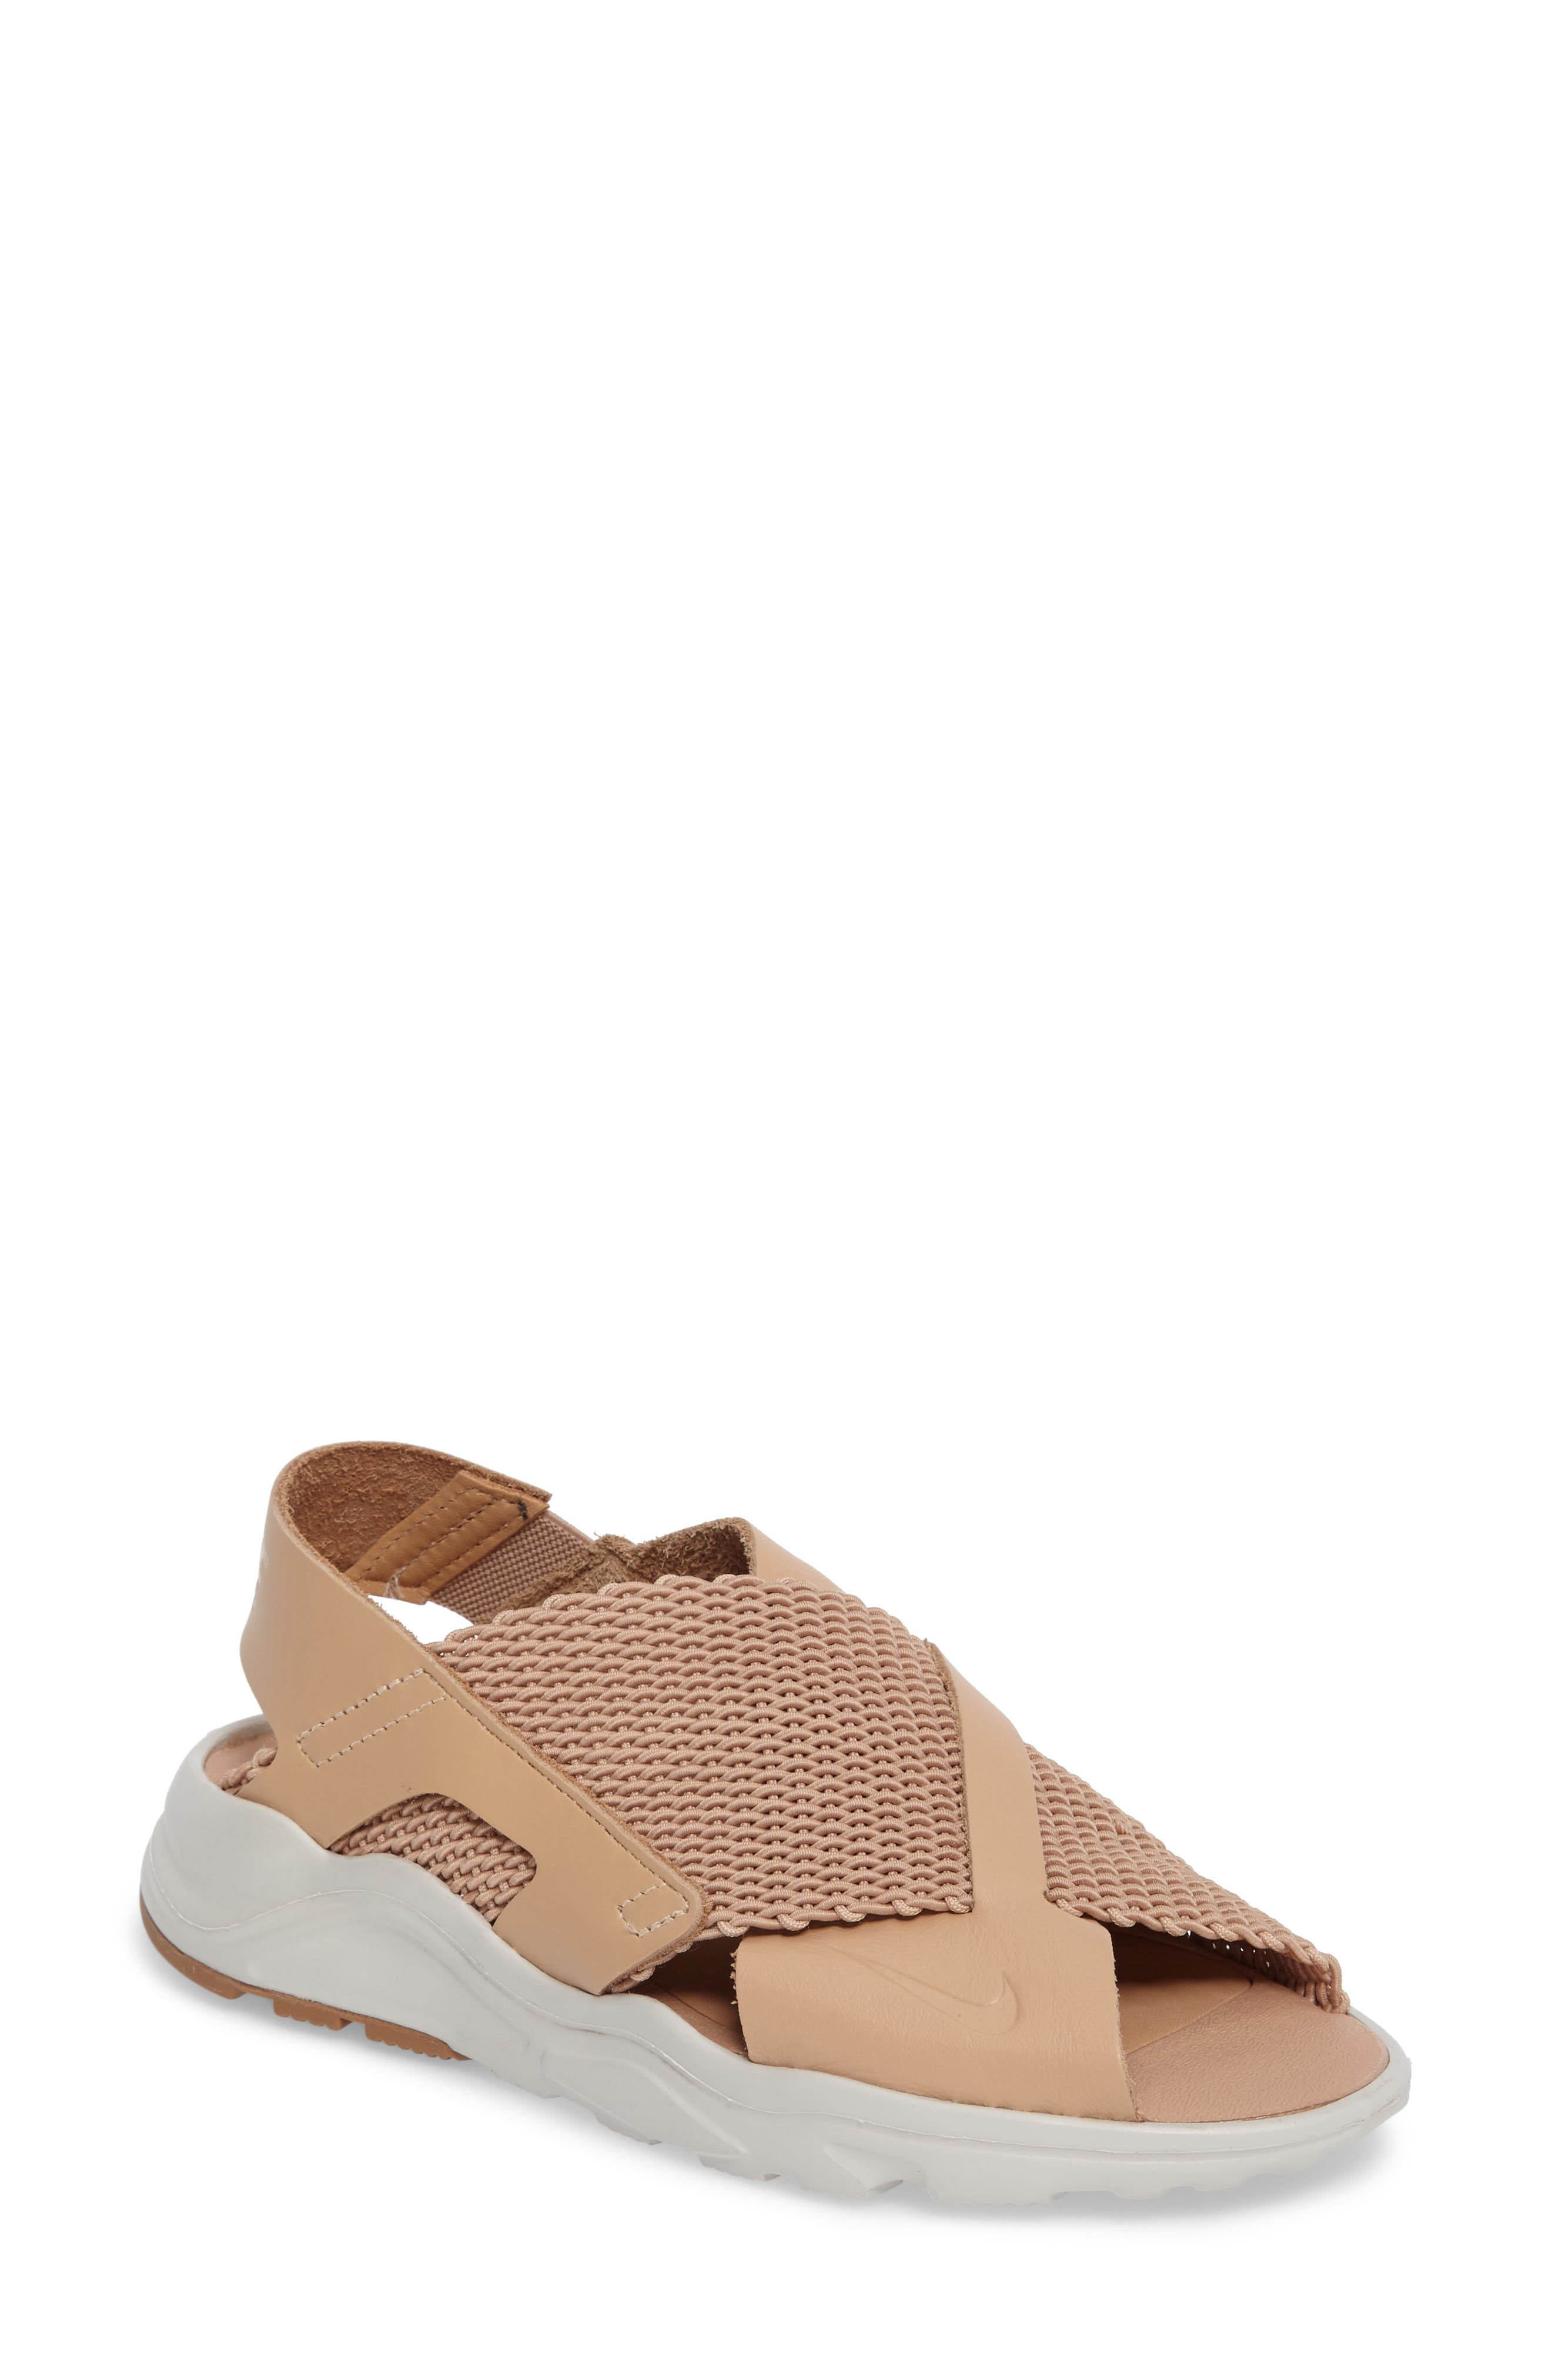 Air Huarache Ultra Sport Sandal,                             Main thumbnail 3, color,